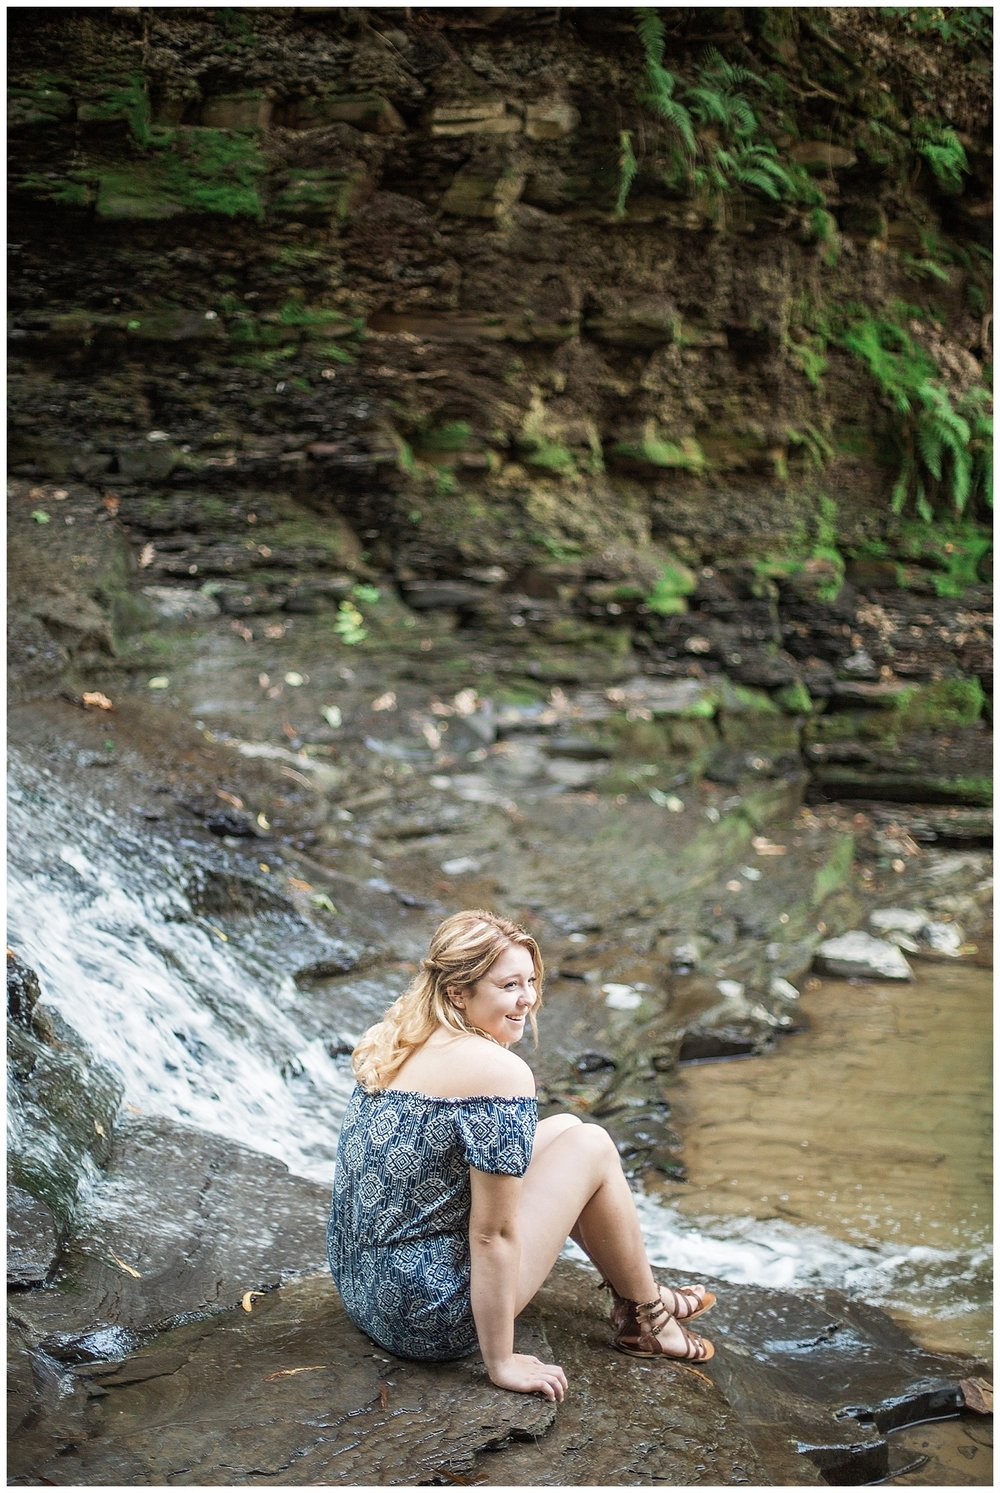 Hannah houghton school -letchworth state park senior session - lass and beau-36_Buffalo wedding photography.jpg